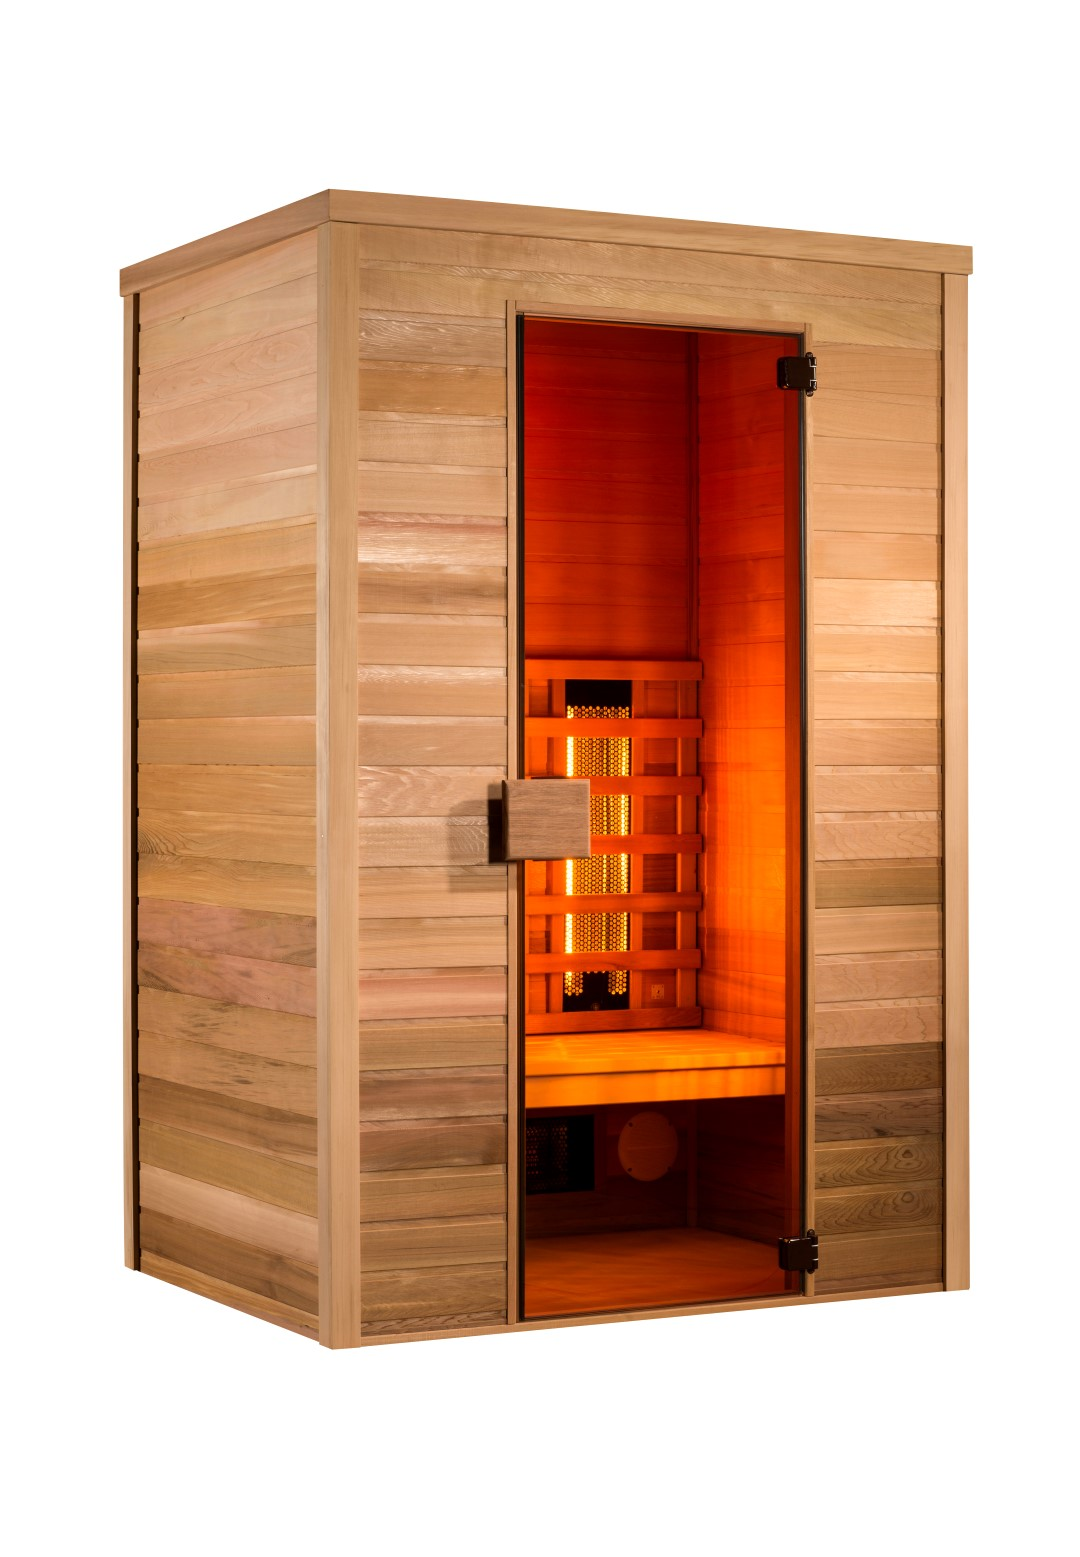 Sauna infrarouge multiwave 3 3 places - Sauna infrarouge 3 places ...